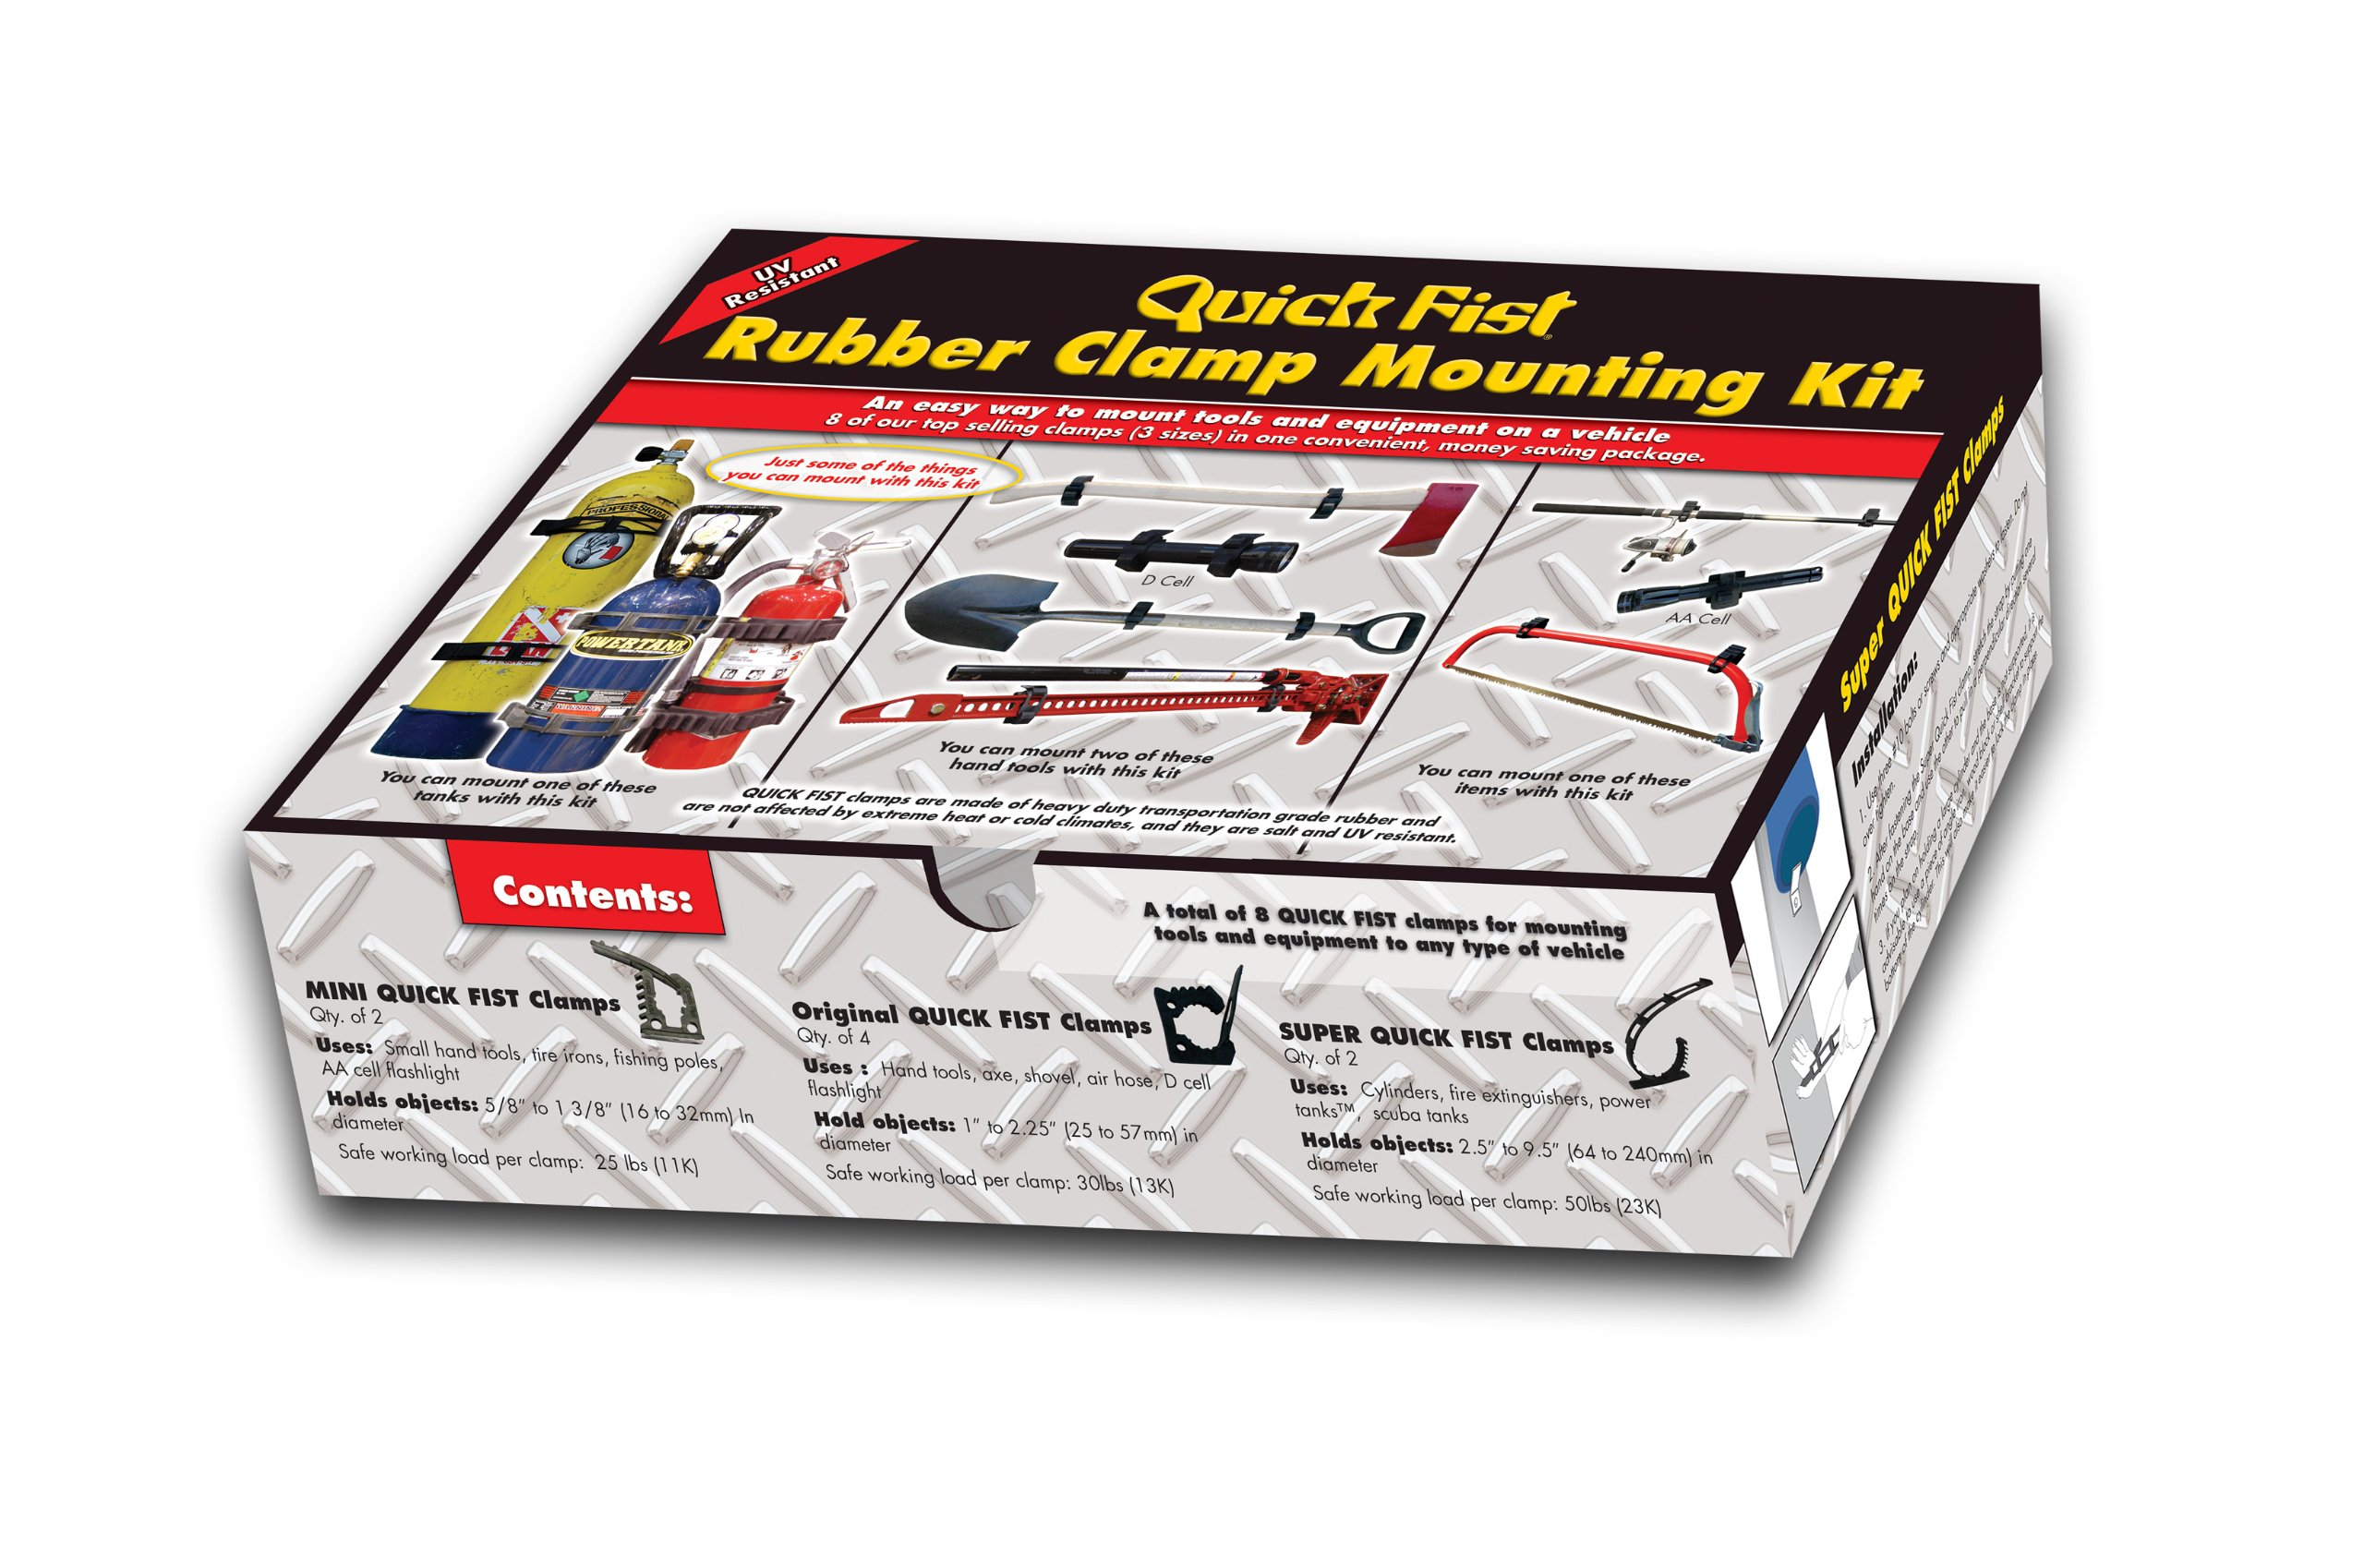 8 piece Quick Fist Clamp Mounting Kit by Quick Fist